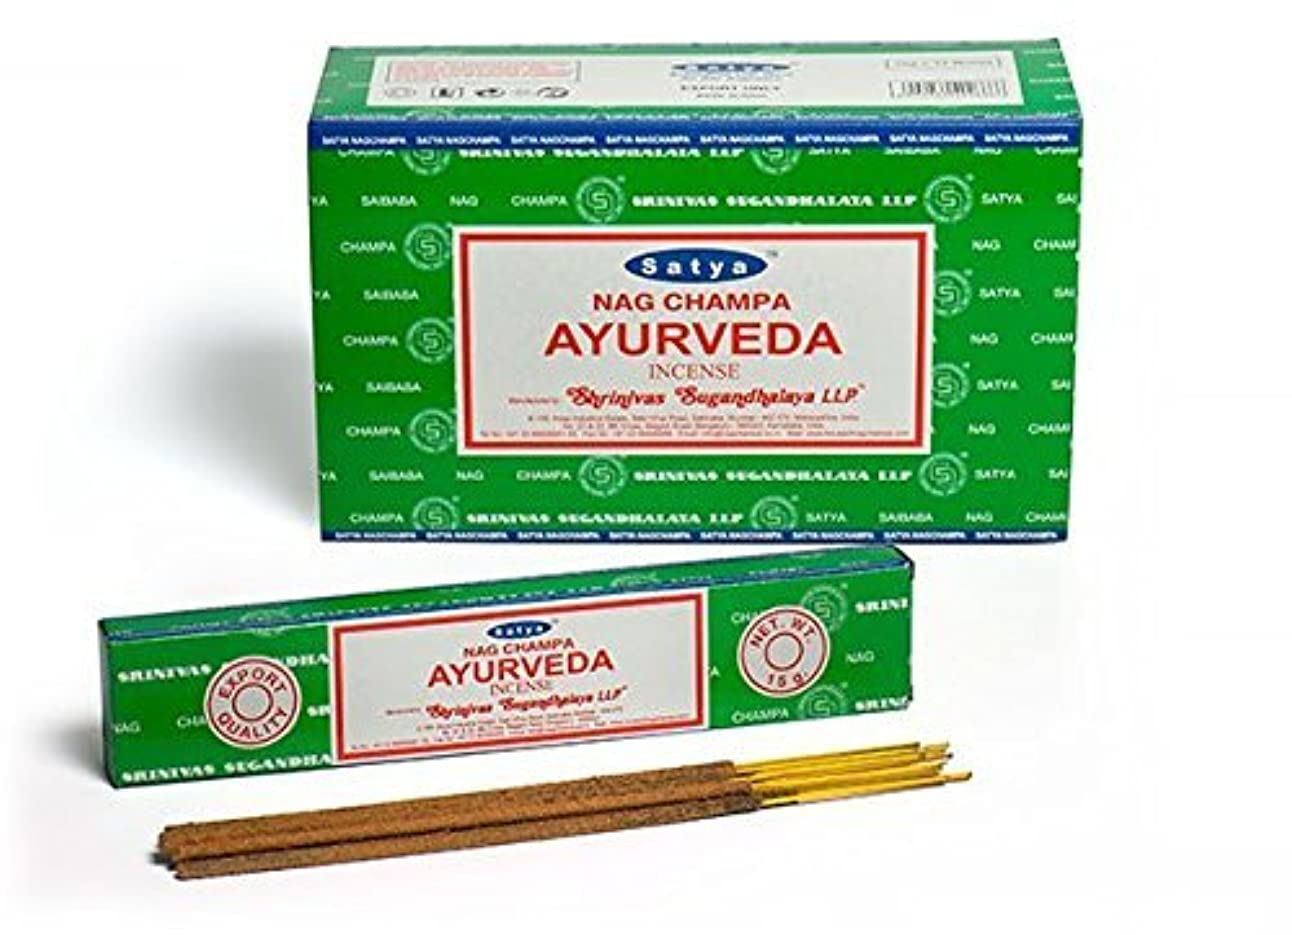 あからさま帳面ナビゲーションBuycrafty Satya Champa Ayurveda Incense Stick,180 Grams Box (15g x 12 Boxes)